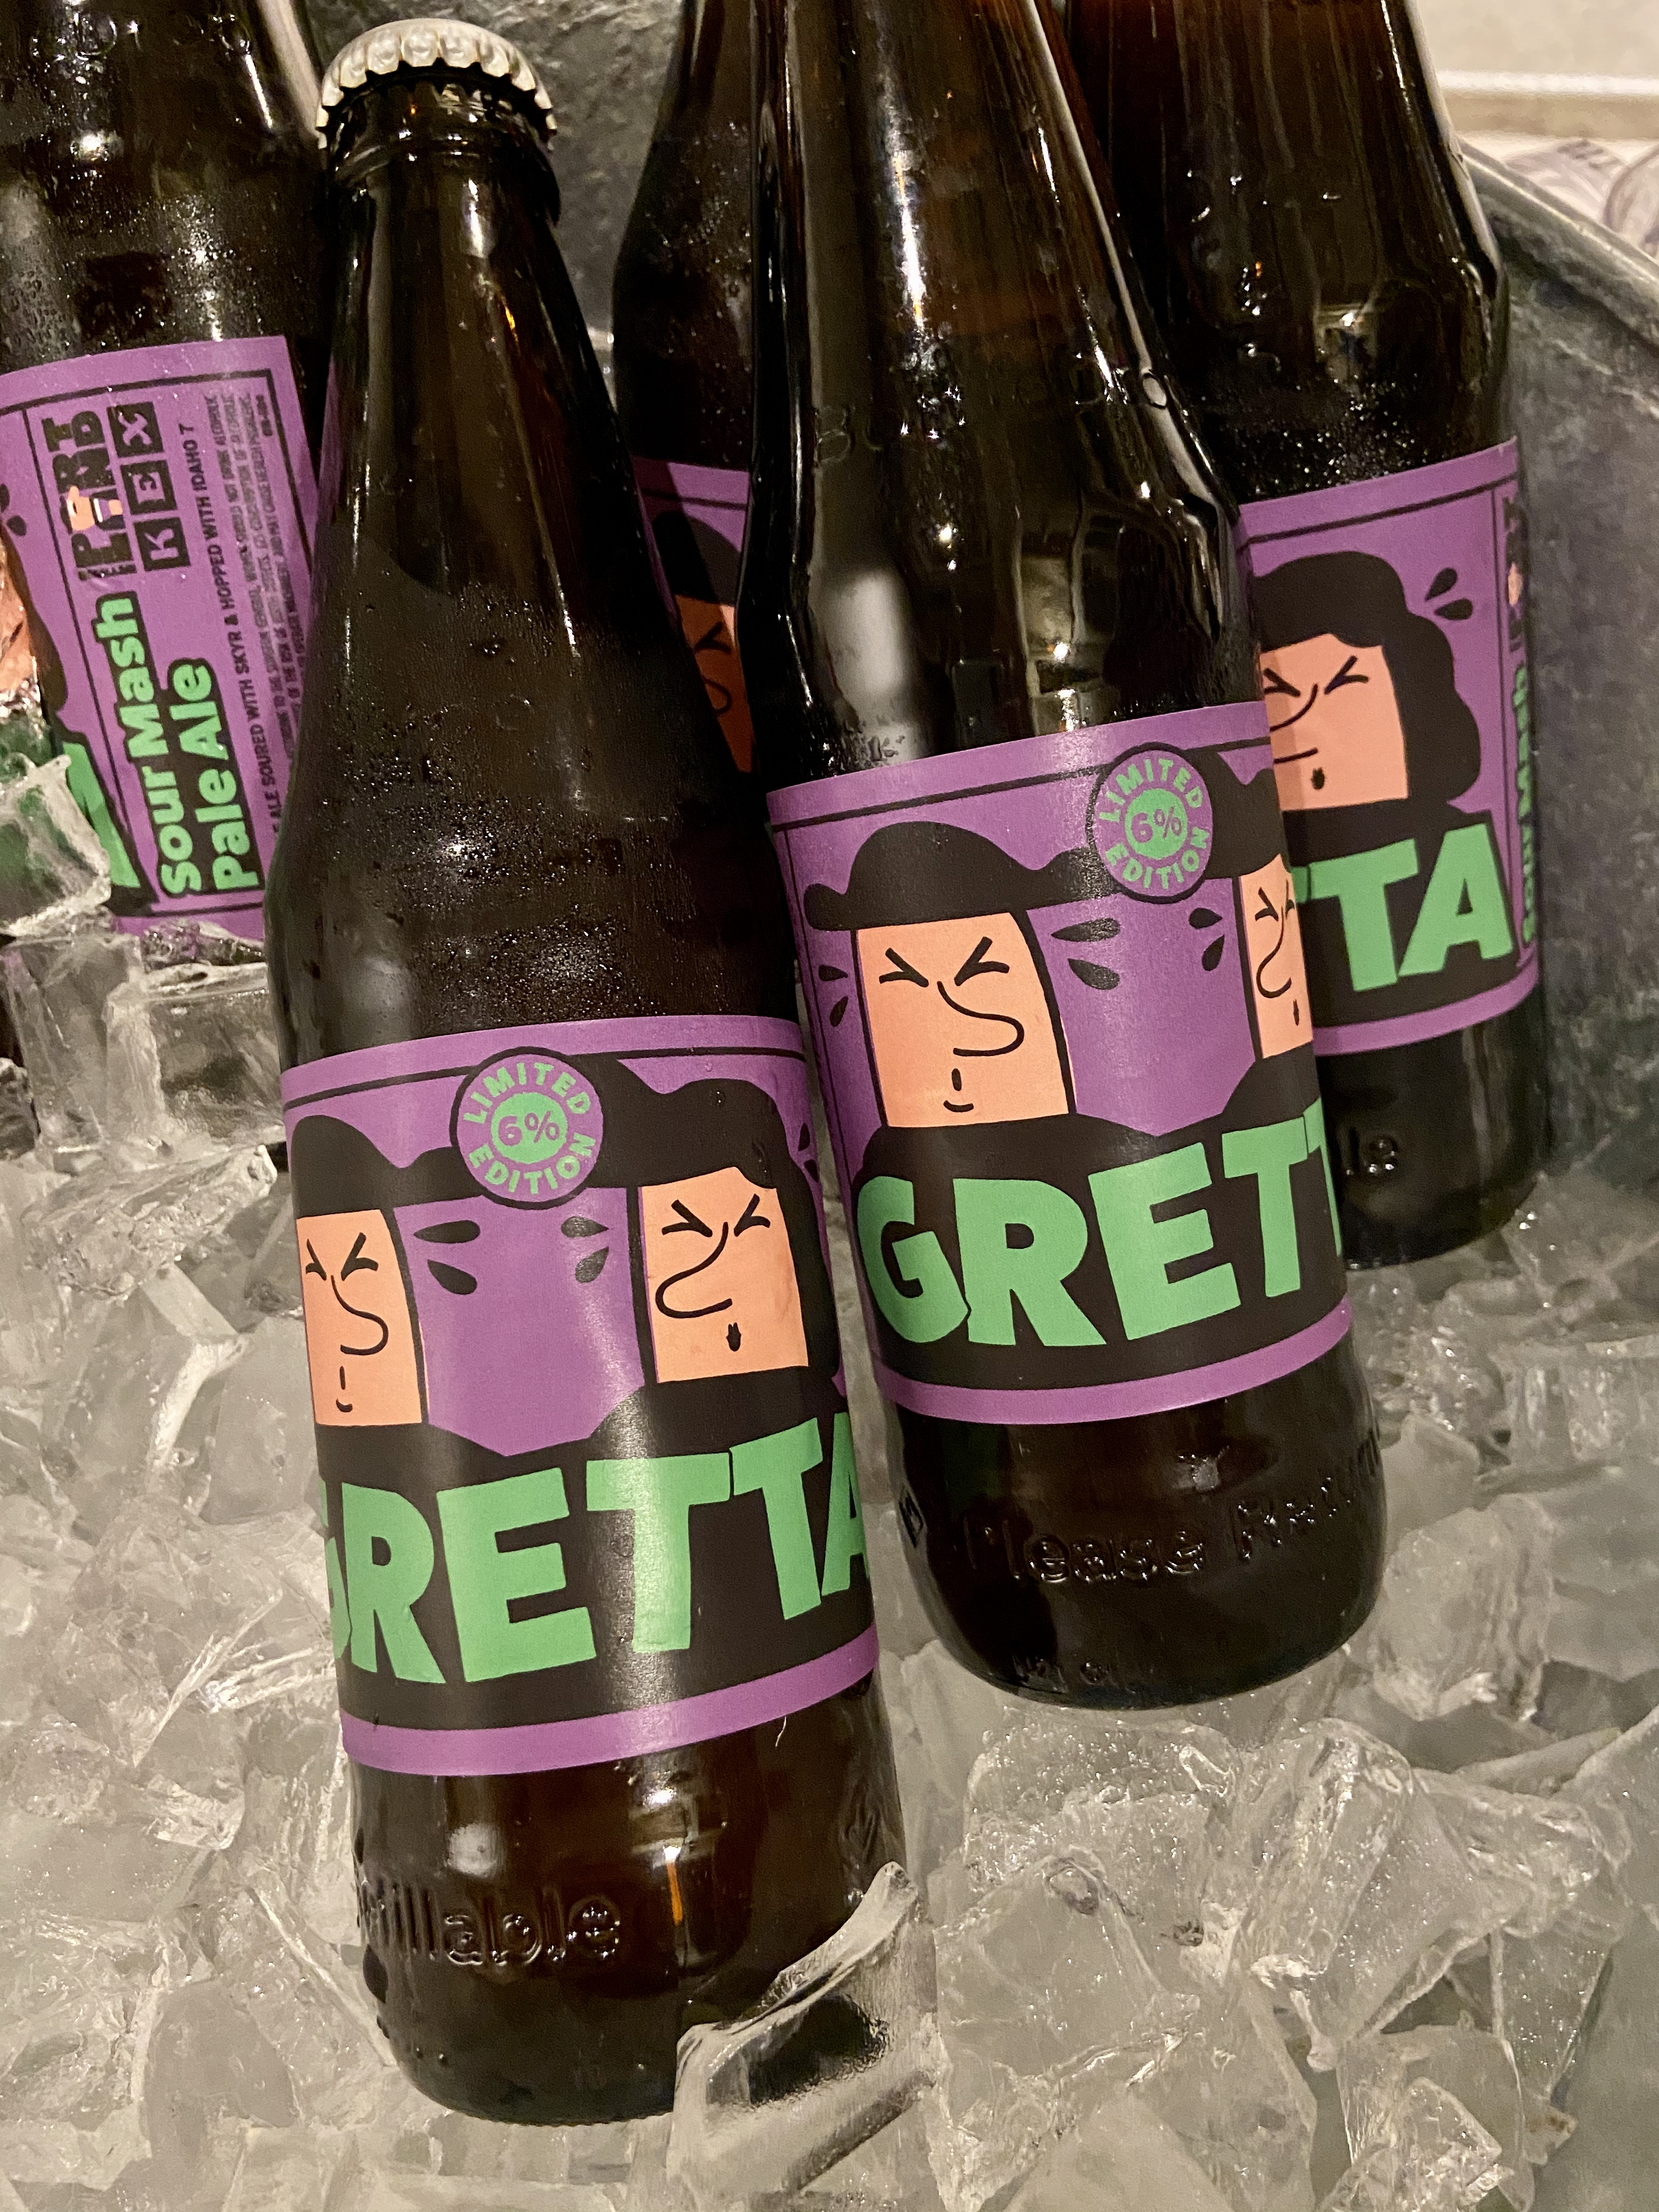 Bottles of Gretta, a collaboration beer between KEX Brewing and Mikkeller.